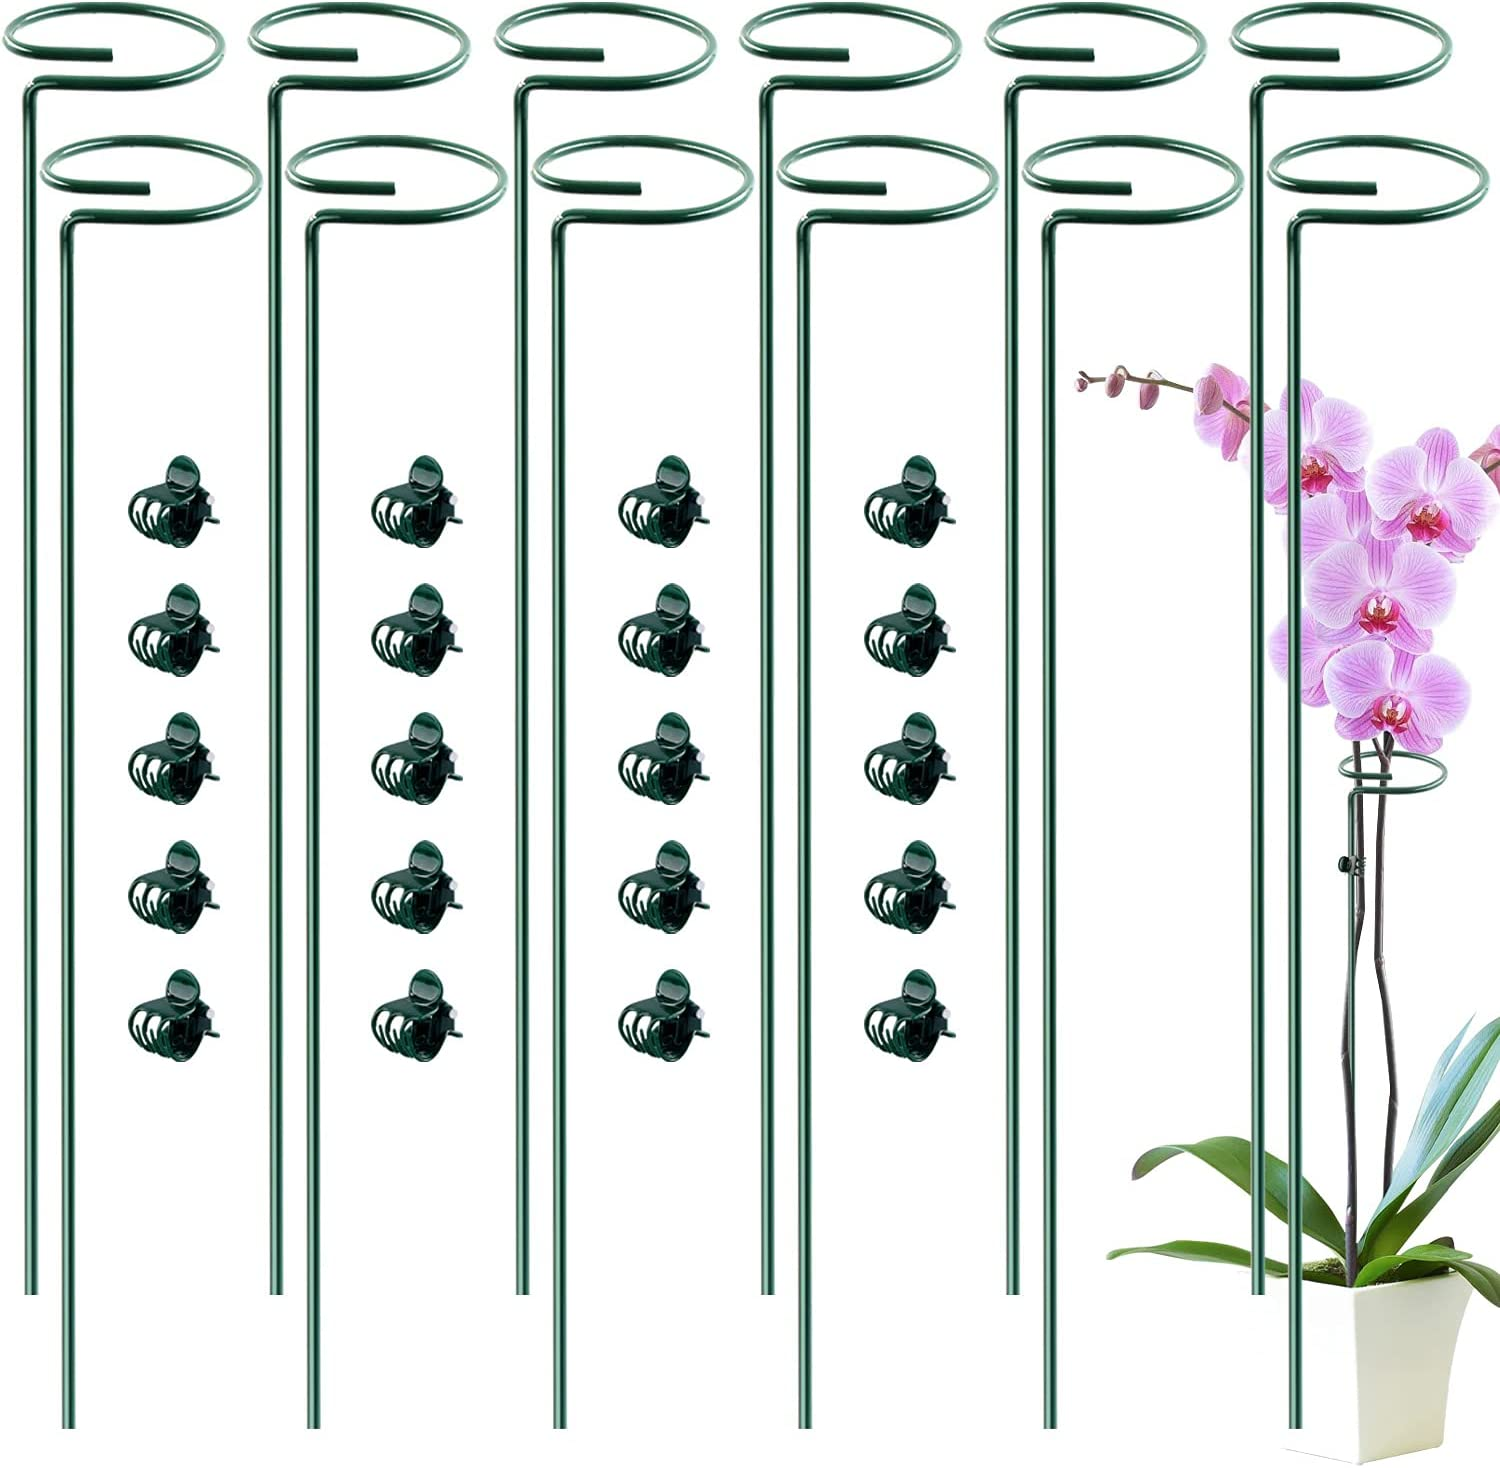 HiGift 12 Pack Plant Mail order cheap Stake Support 20pcs with for NEW before selling ☆ Flowers Orchid